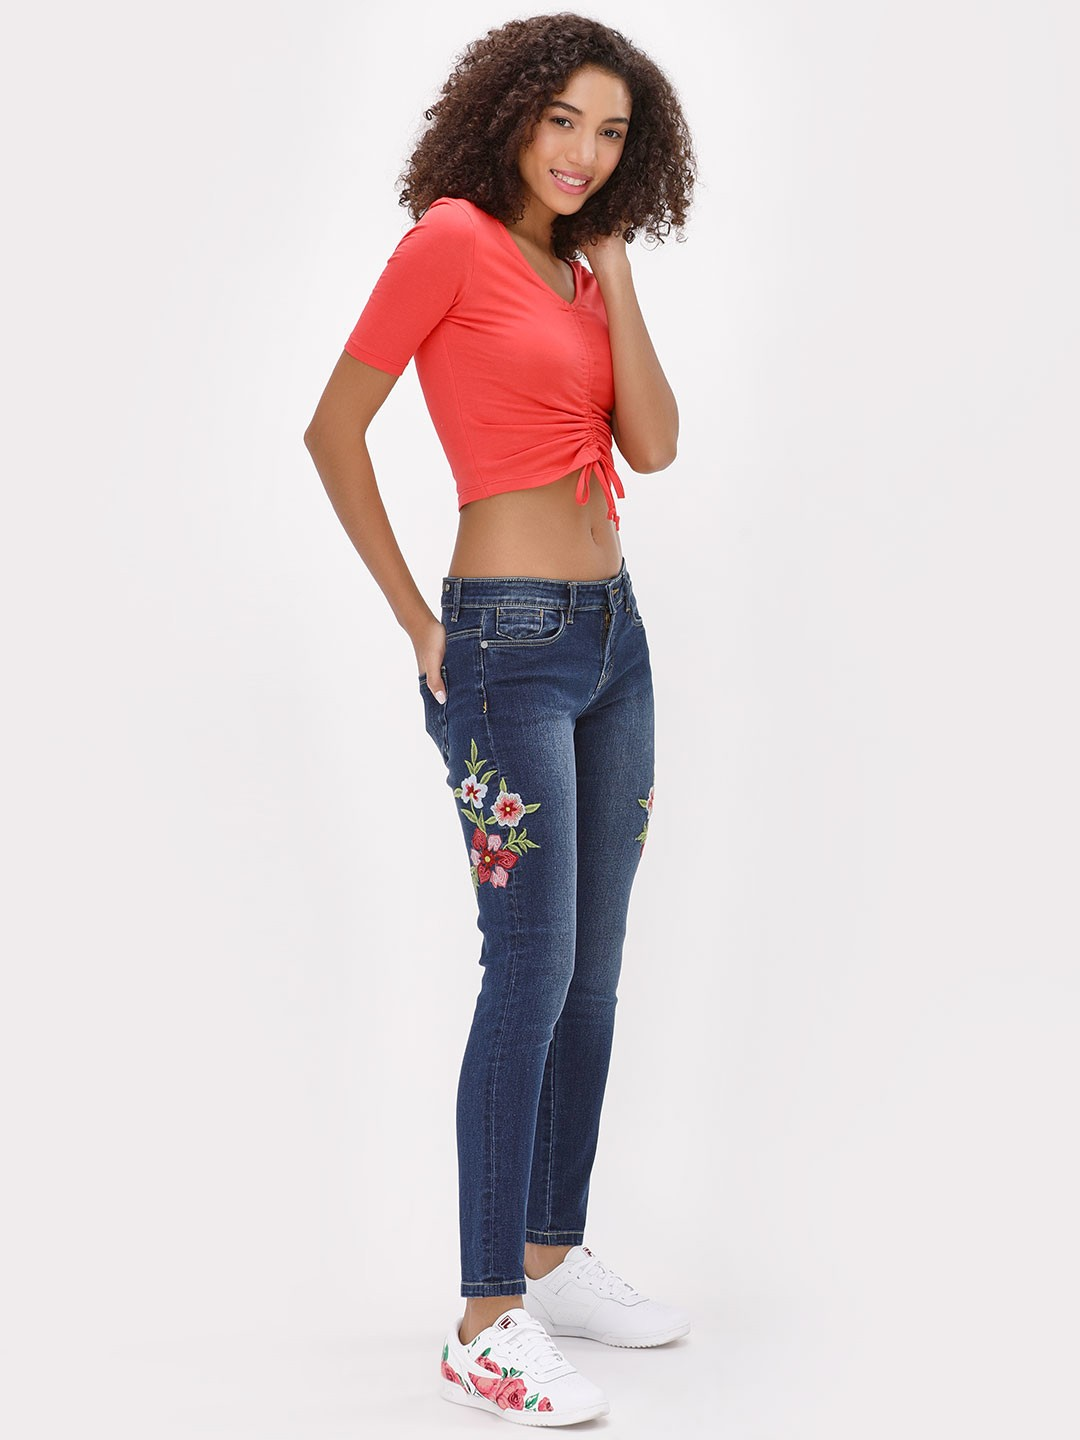 K Denim Blue KOOVS Blue Wash Floral Embroidered Jeans 1